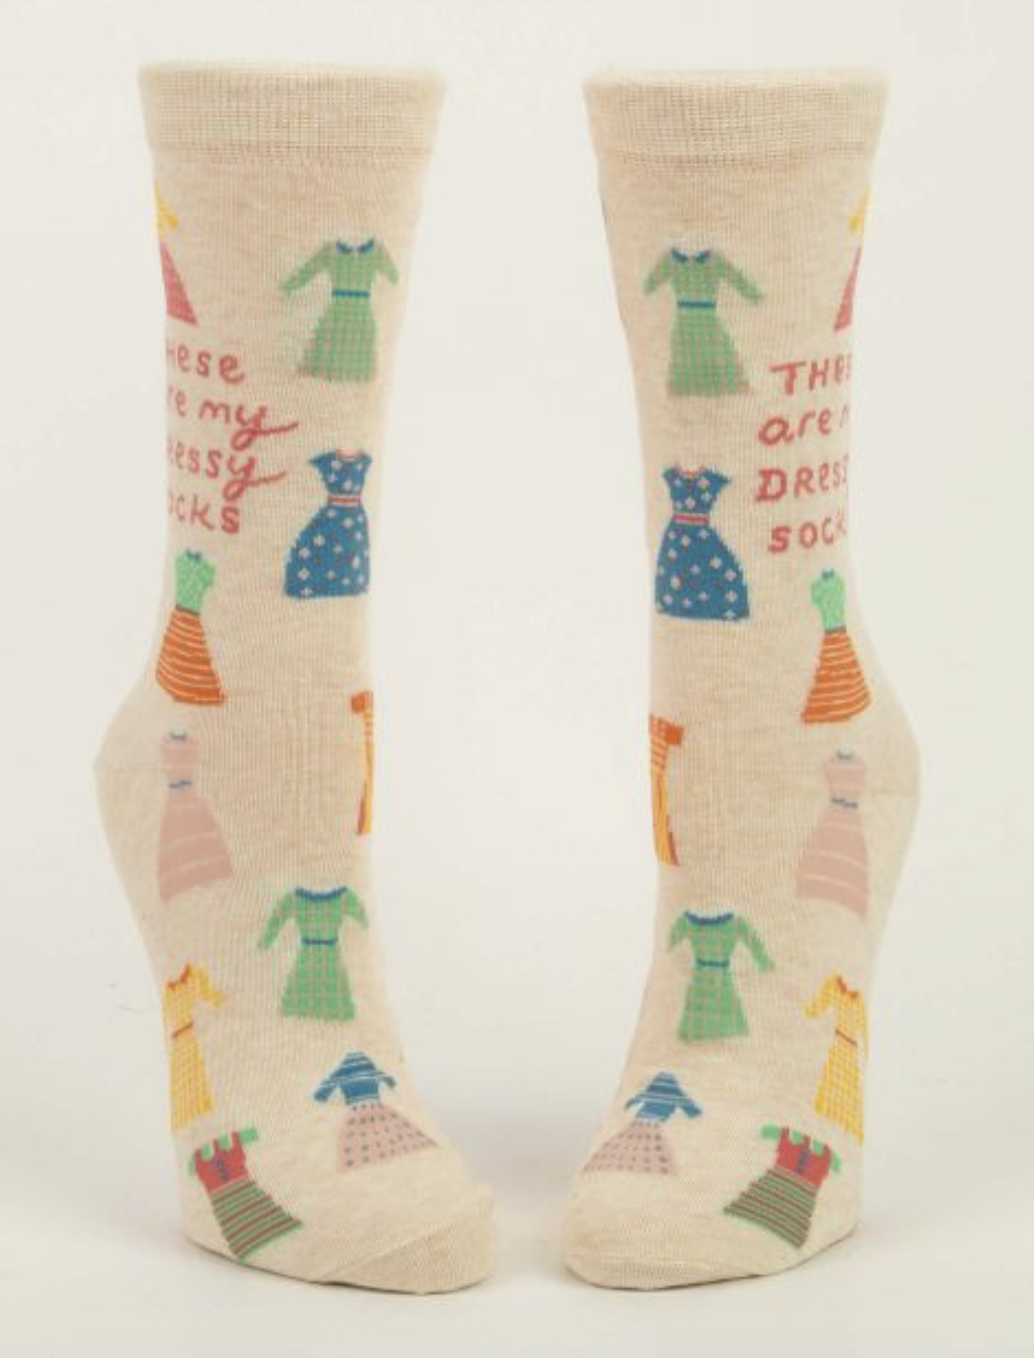 These Are My Dressy Blue-Q Women's Crew Socks New Novelty